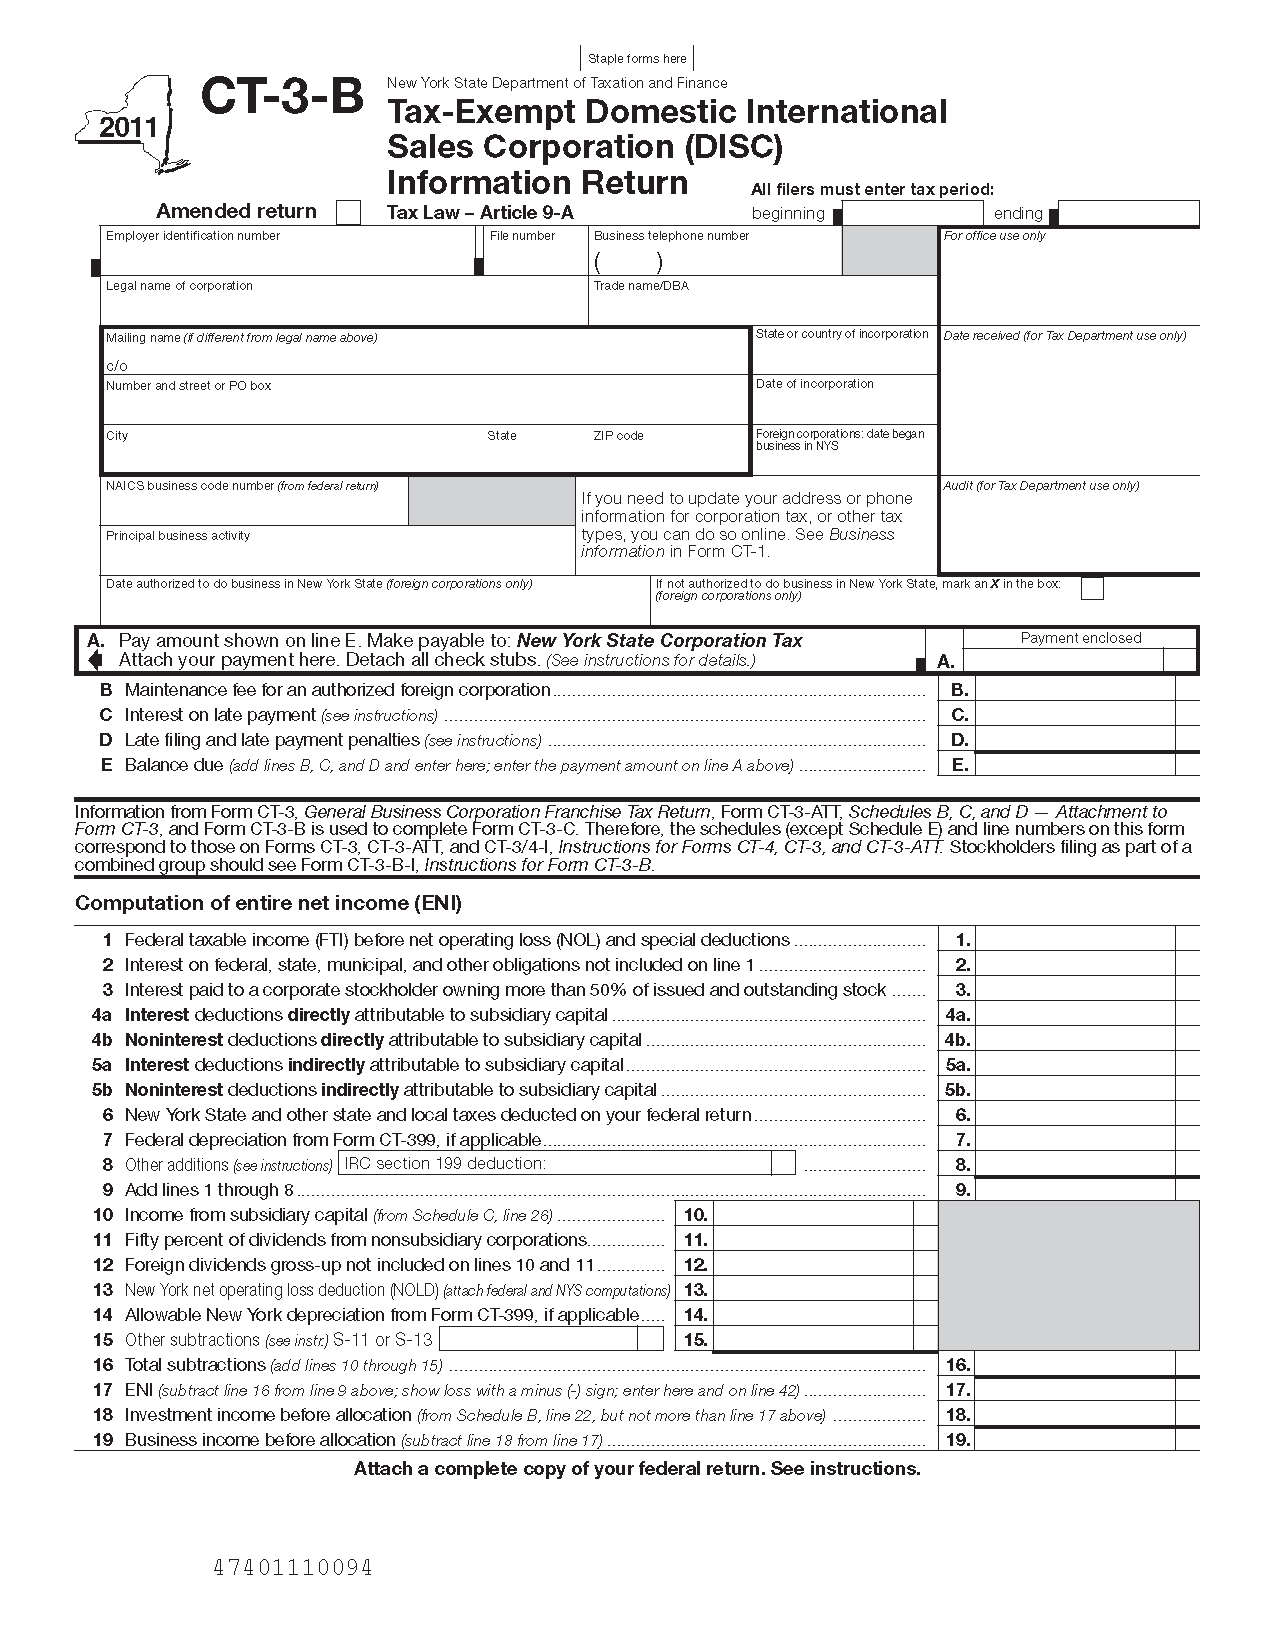 Form CT-3-B Tax Exempt Domestic International Sales Corporation ...